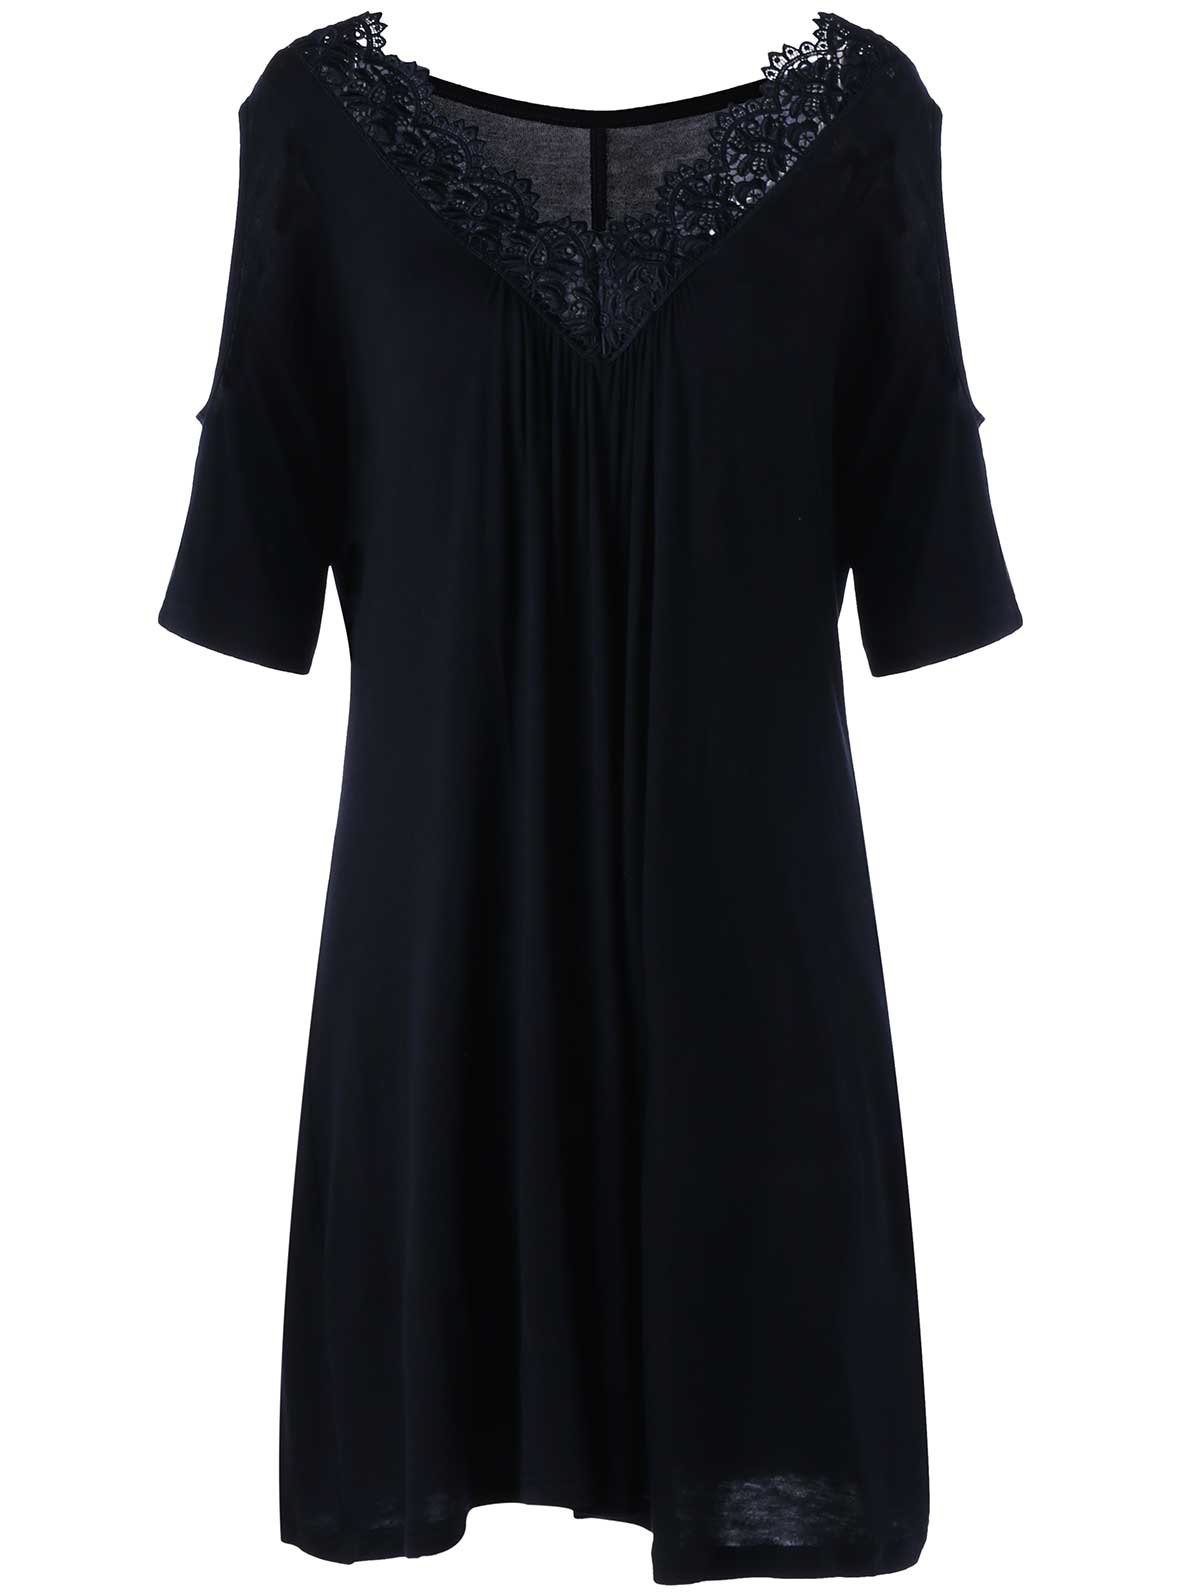 Plus Size Cold Shoulder V Neck DressWOMEN<br><br>Size: 2XL; Color: BLACK; Style: Casual; Material: Rayon,Spandex; Silhouette: Straight; Dresses Length: Mini; Neckline: V-Neck; Sleeve Length: Short Sleeves; Pattern Type: Solid Color; With Belt: No; Season: Fall,Spring,Summer; Weight: 0.2700kg; Package Contents: 1 x Dress;